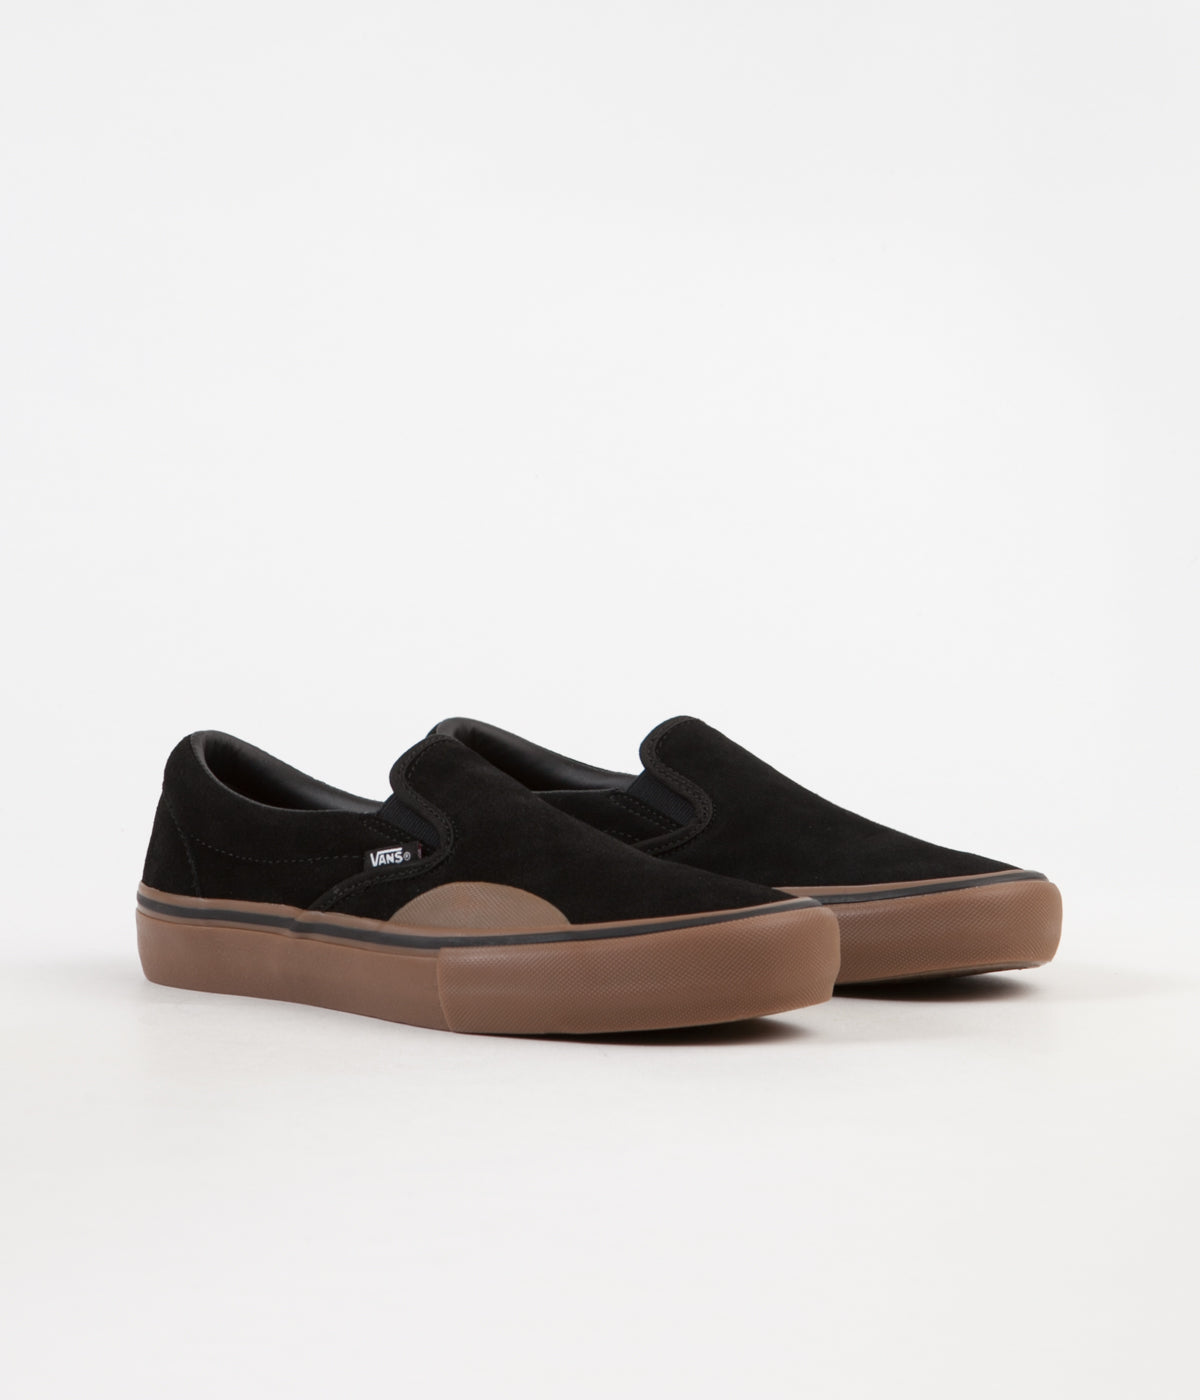 8bcf1a1e1c ... Vans Slip On Pro Shoes - (Rubber) Black   Gum ...